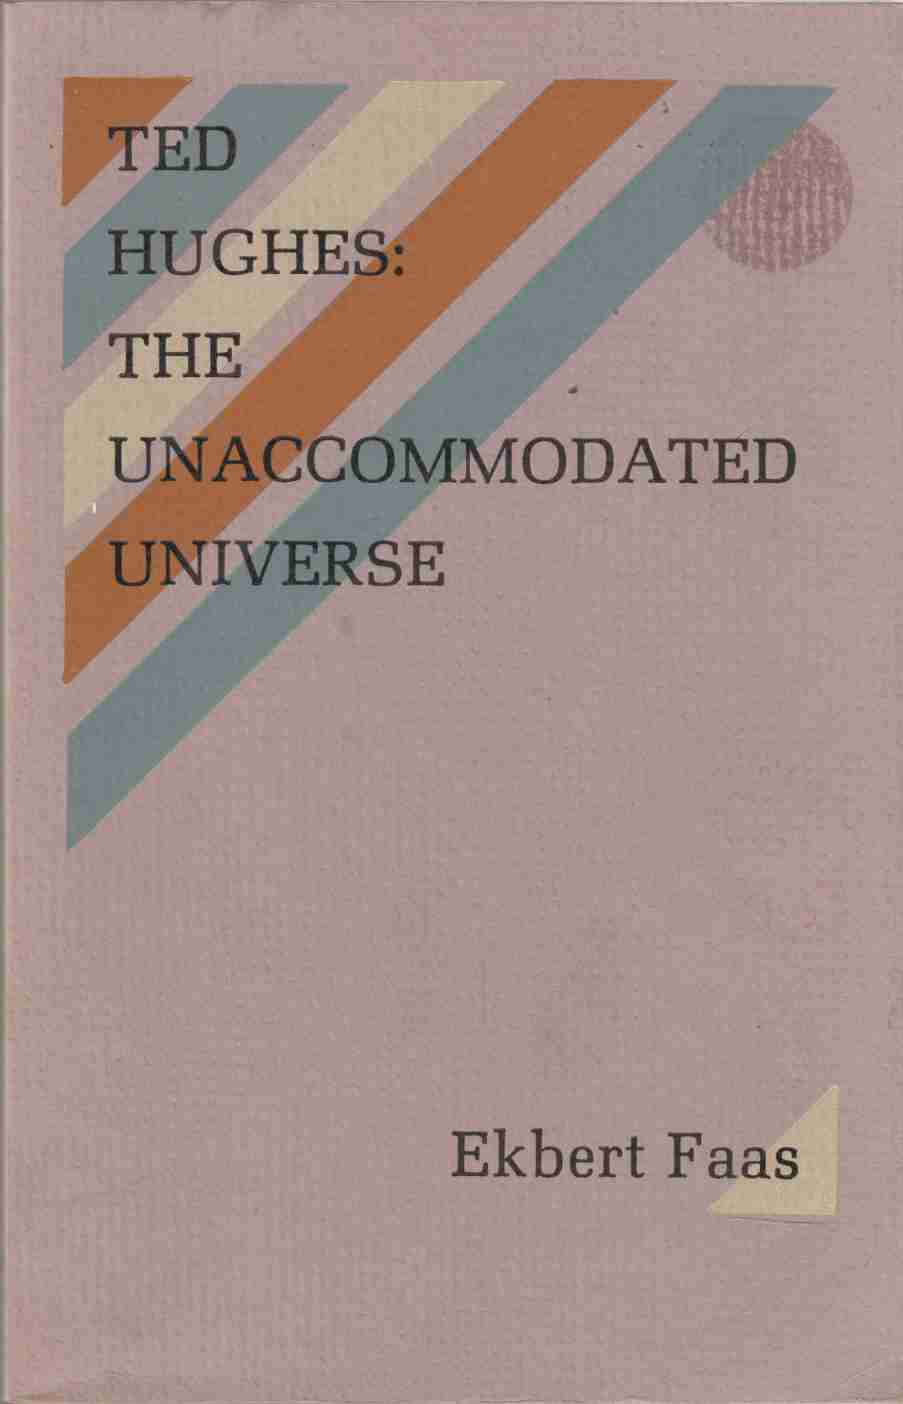 Image for Ted Hughes: the Unaccommodated Universe